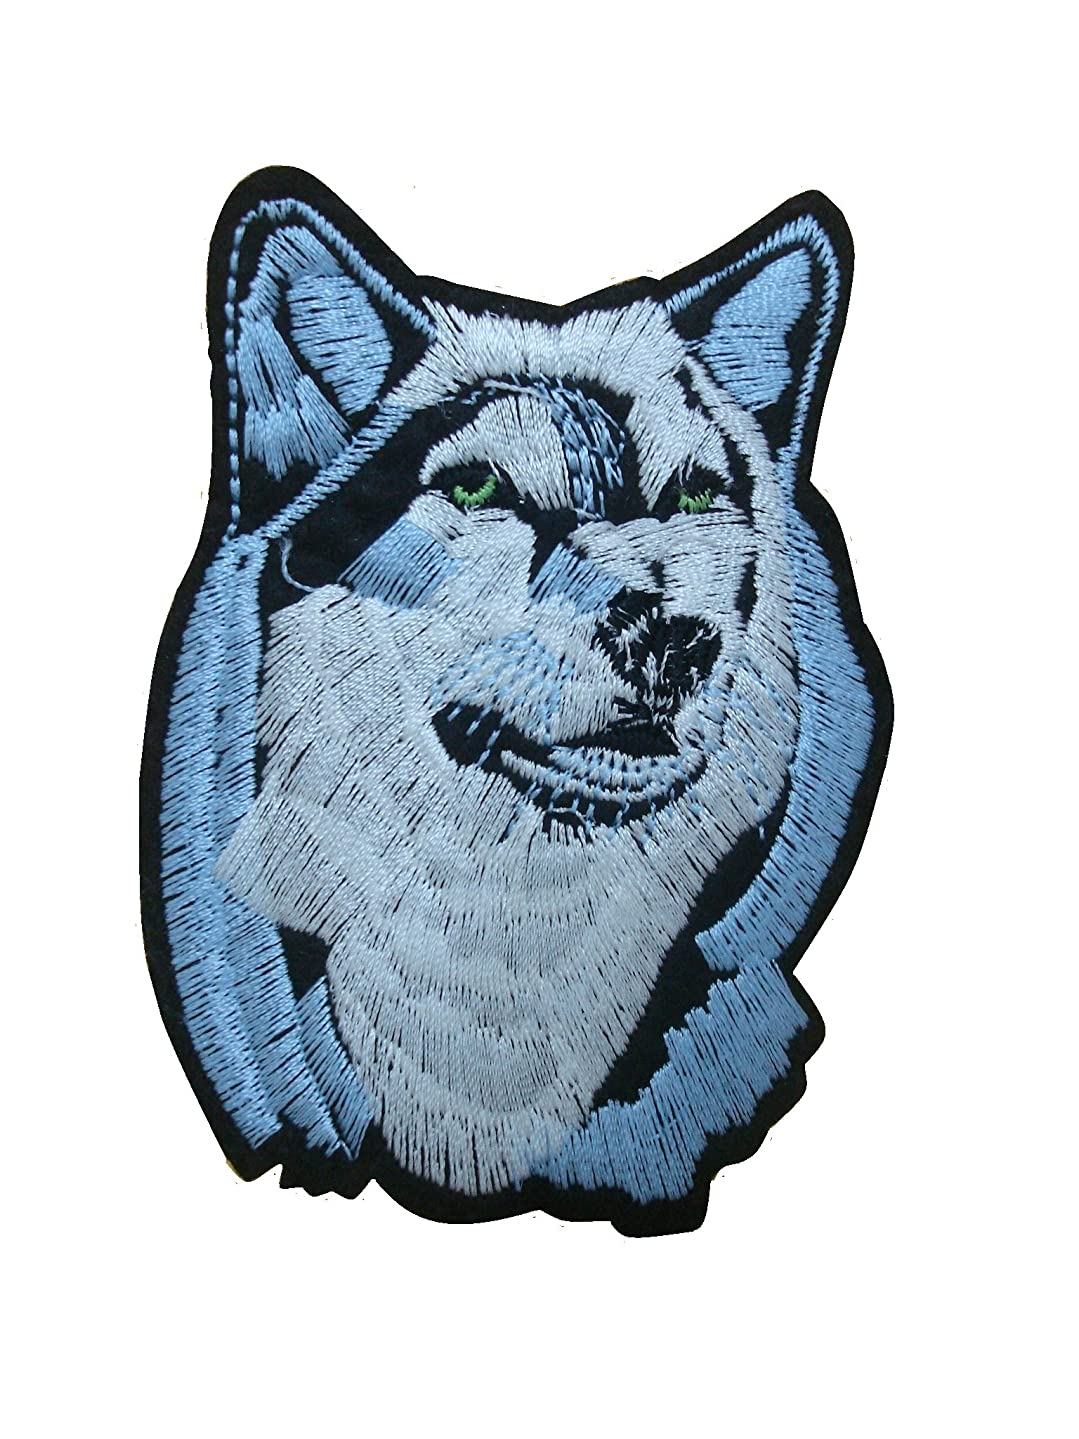 WOLF Iron On Patch Applique Wildlife Animal Husky Dog Motif Fabric Decal 3.7 x 2.5 inches (9.3 x 6.3 cm)